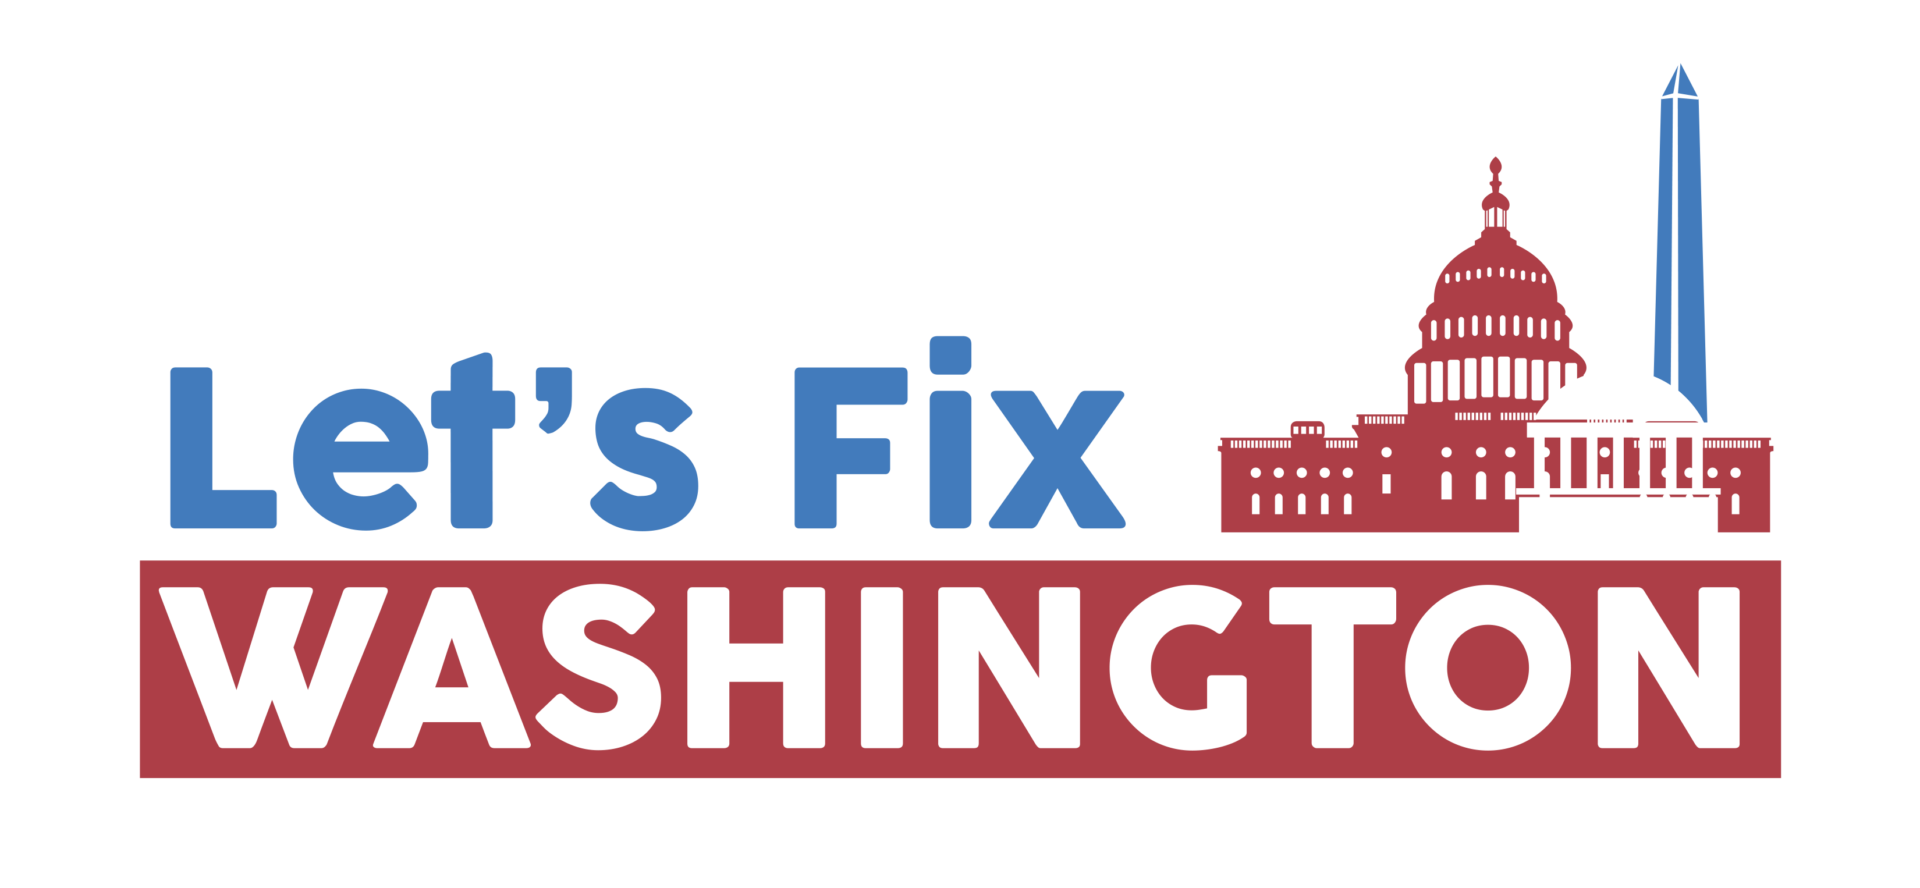 Let's Fix Washington